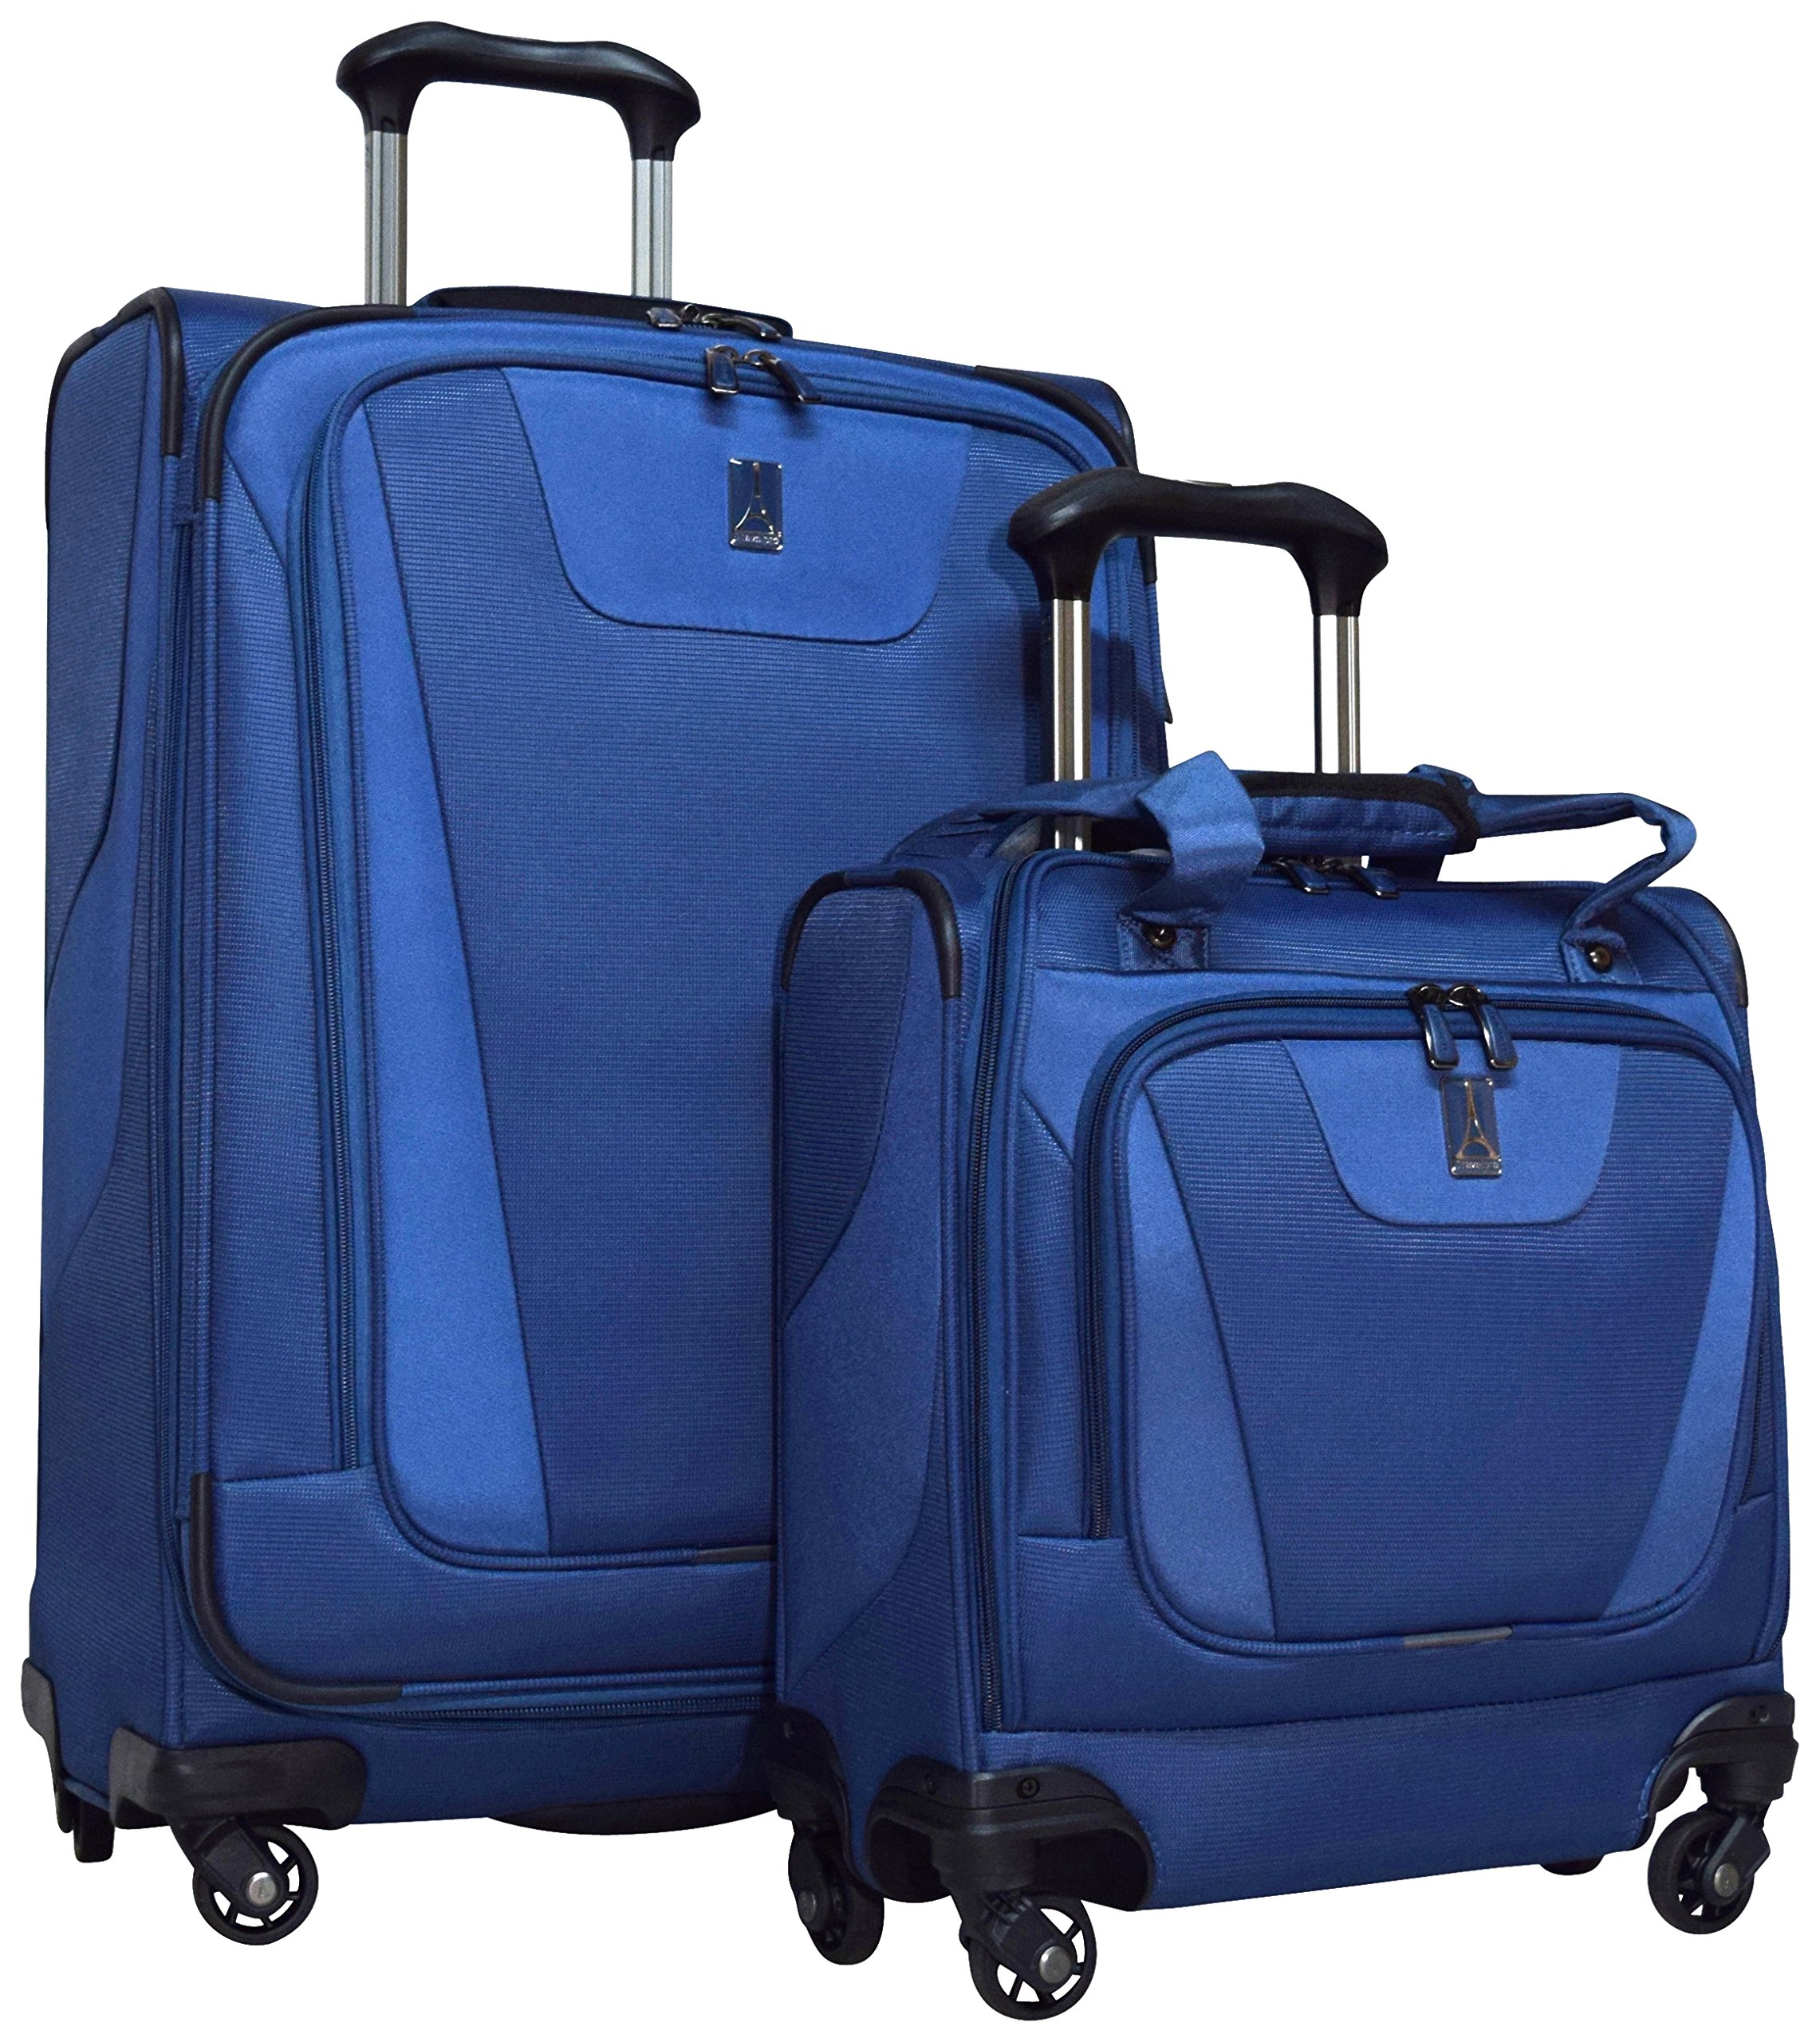 f102af8770ae Travelpro Maxlite 4 2-Piece Luggage Set: 25